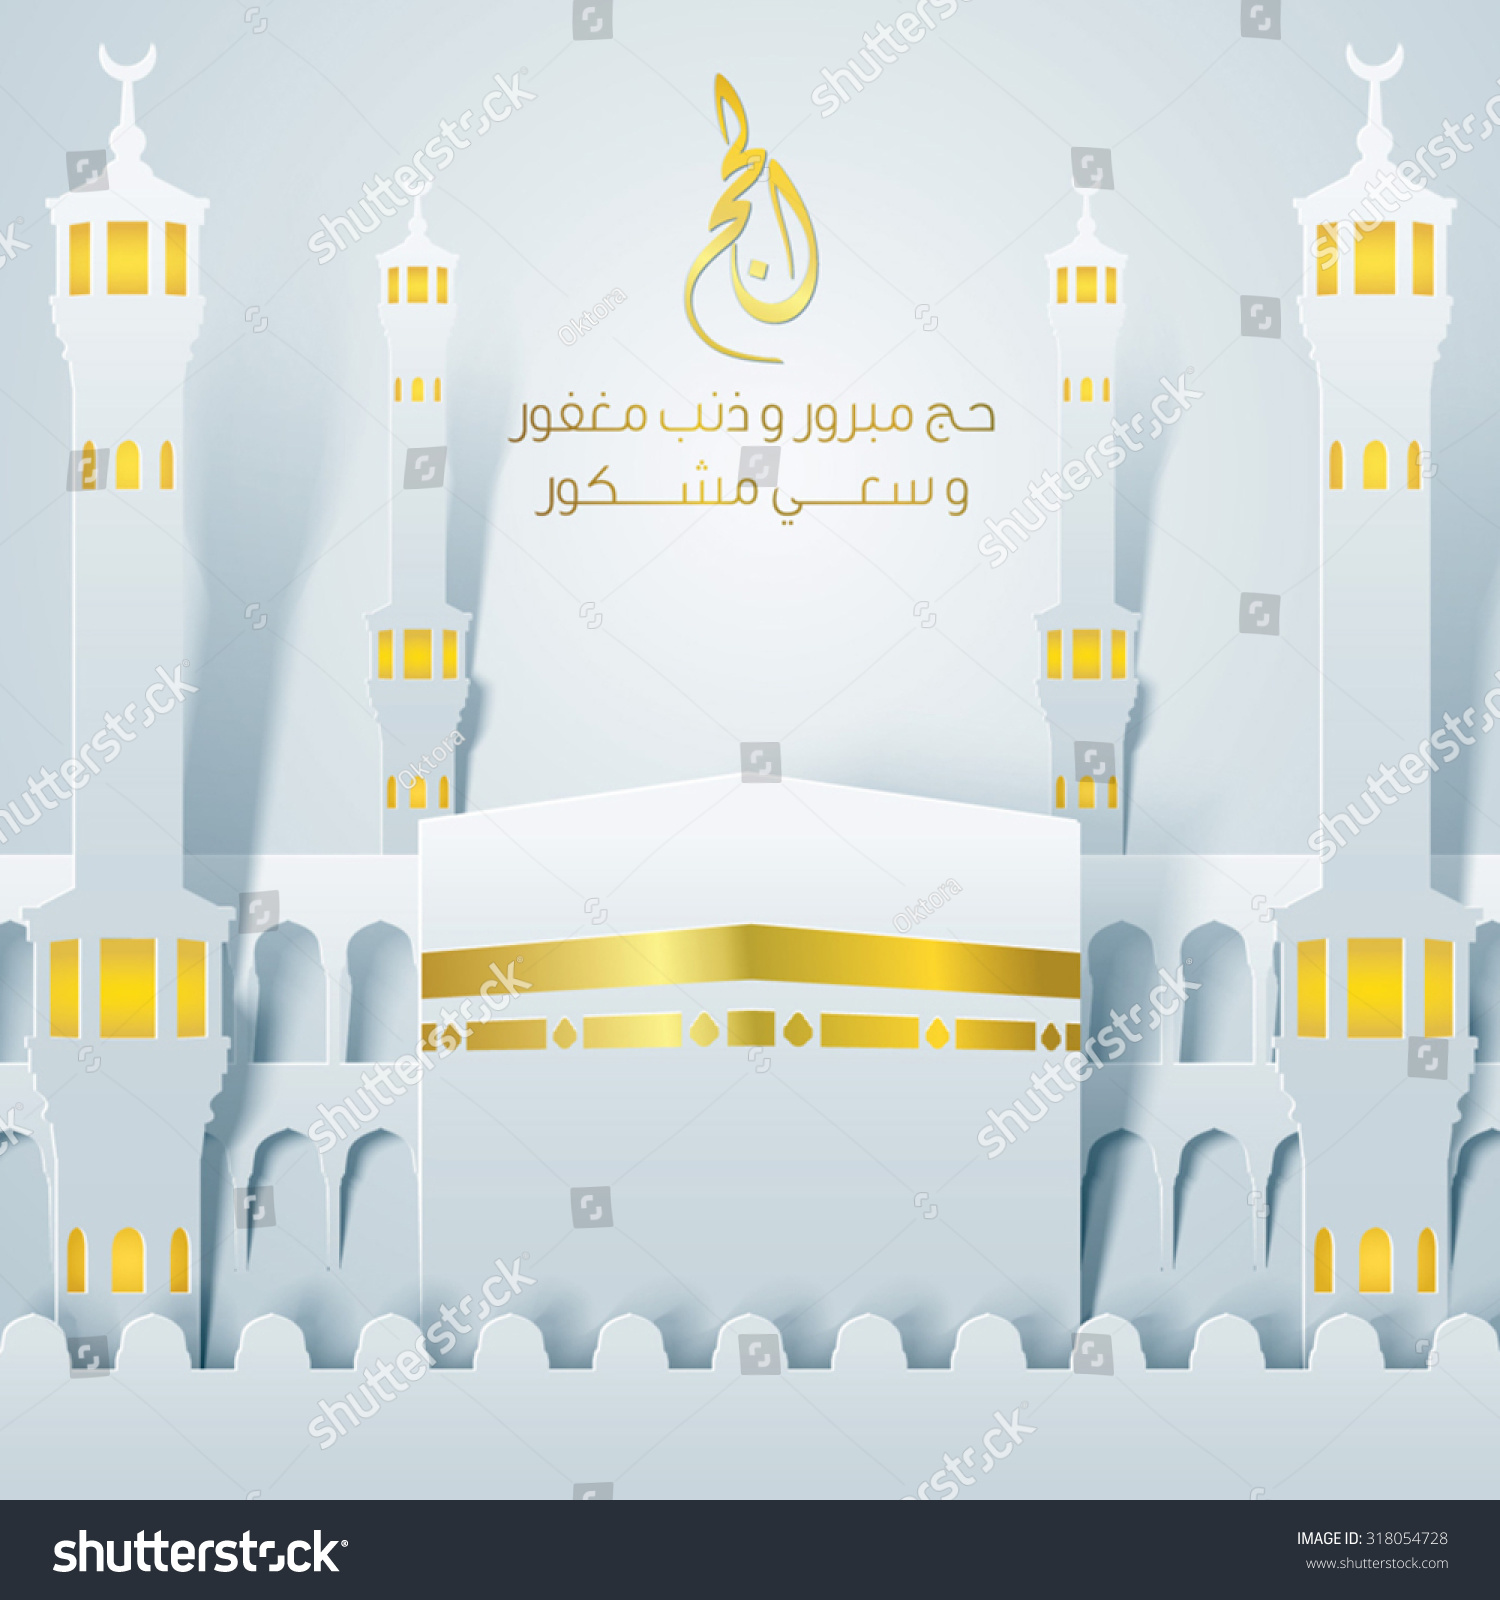 Hajj islamic mosque and kaaba with arabic calligraphy Translation of text May Allah accept your Hajj and grant you forgiveness and reward you for your efforts